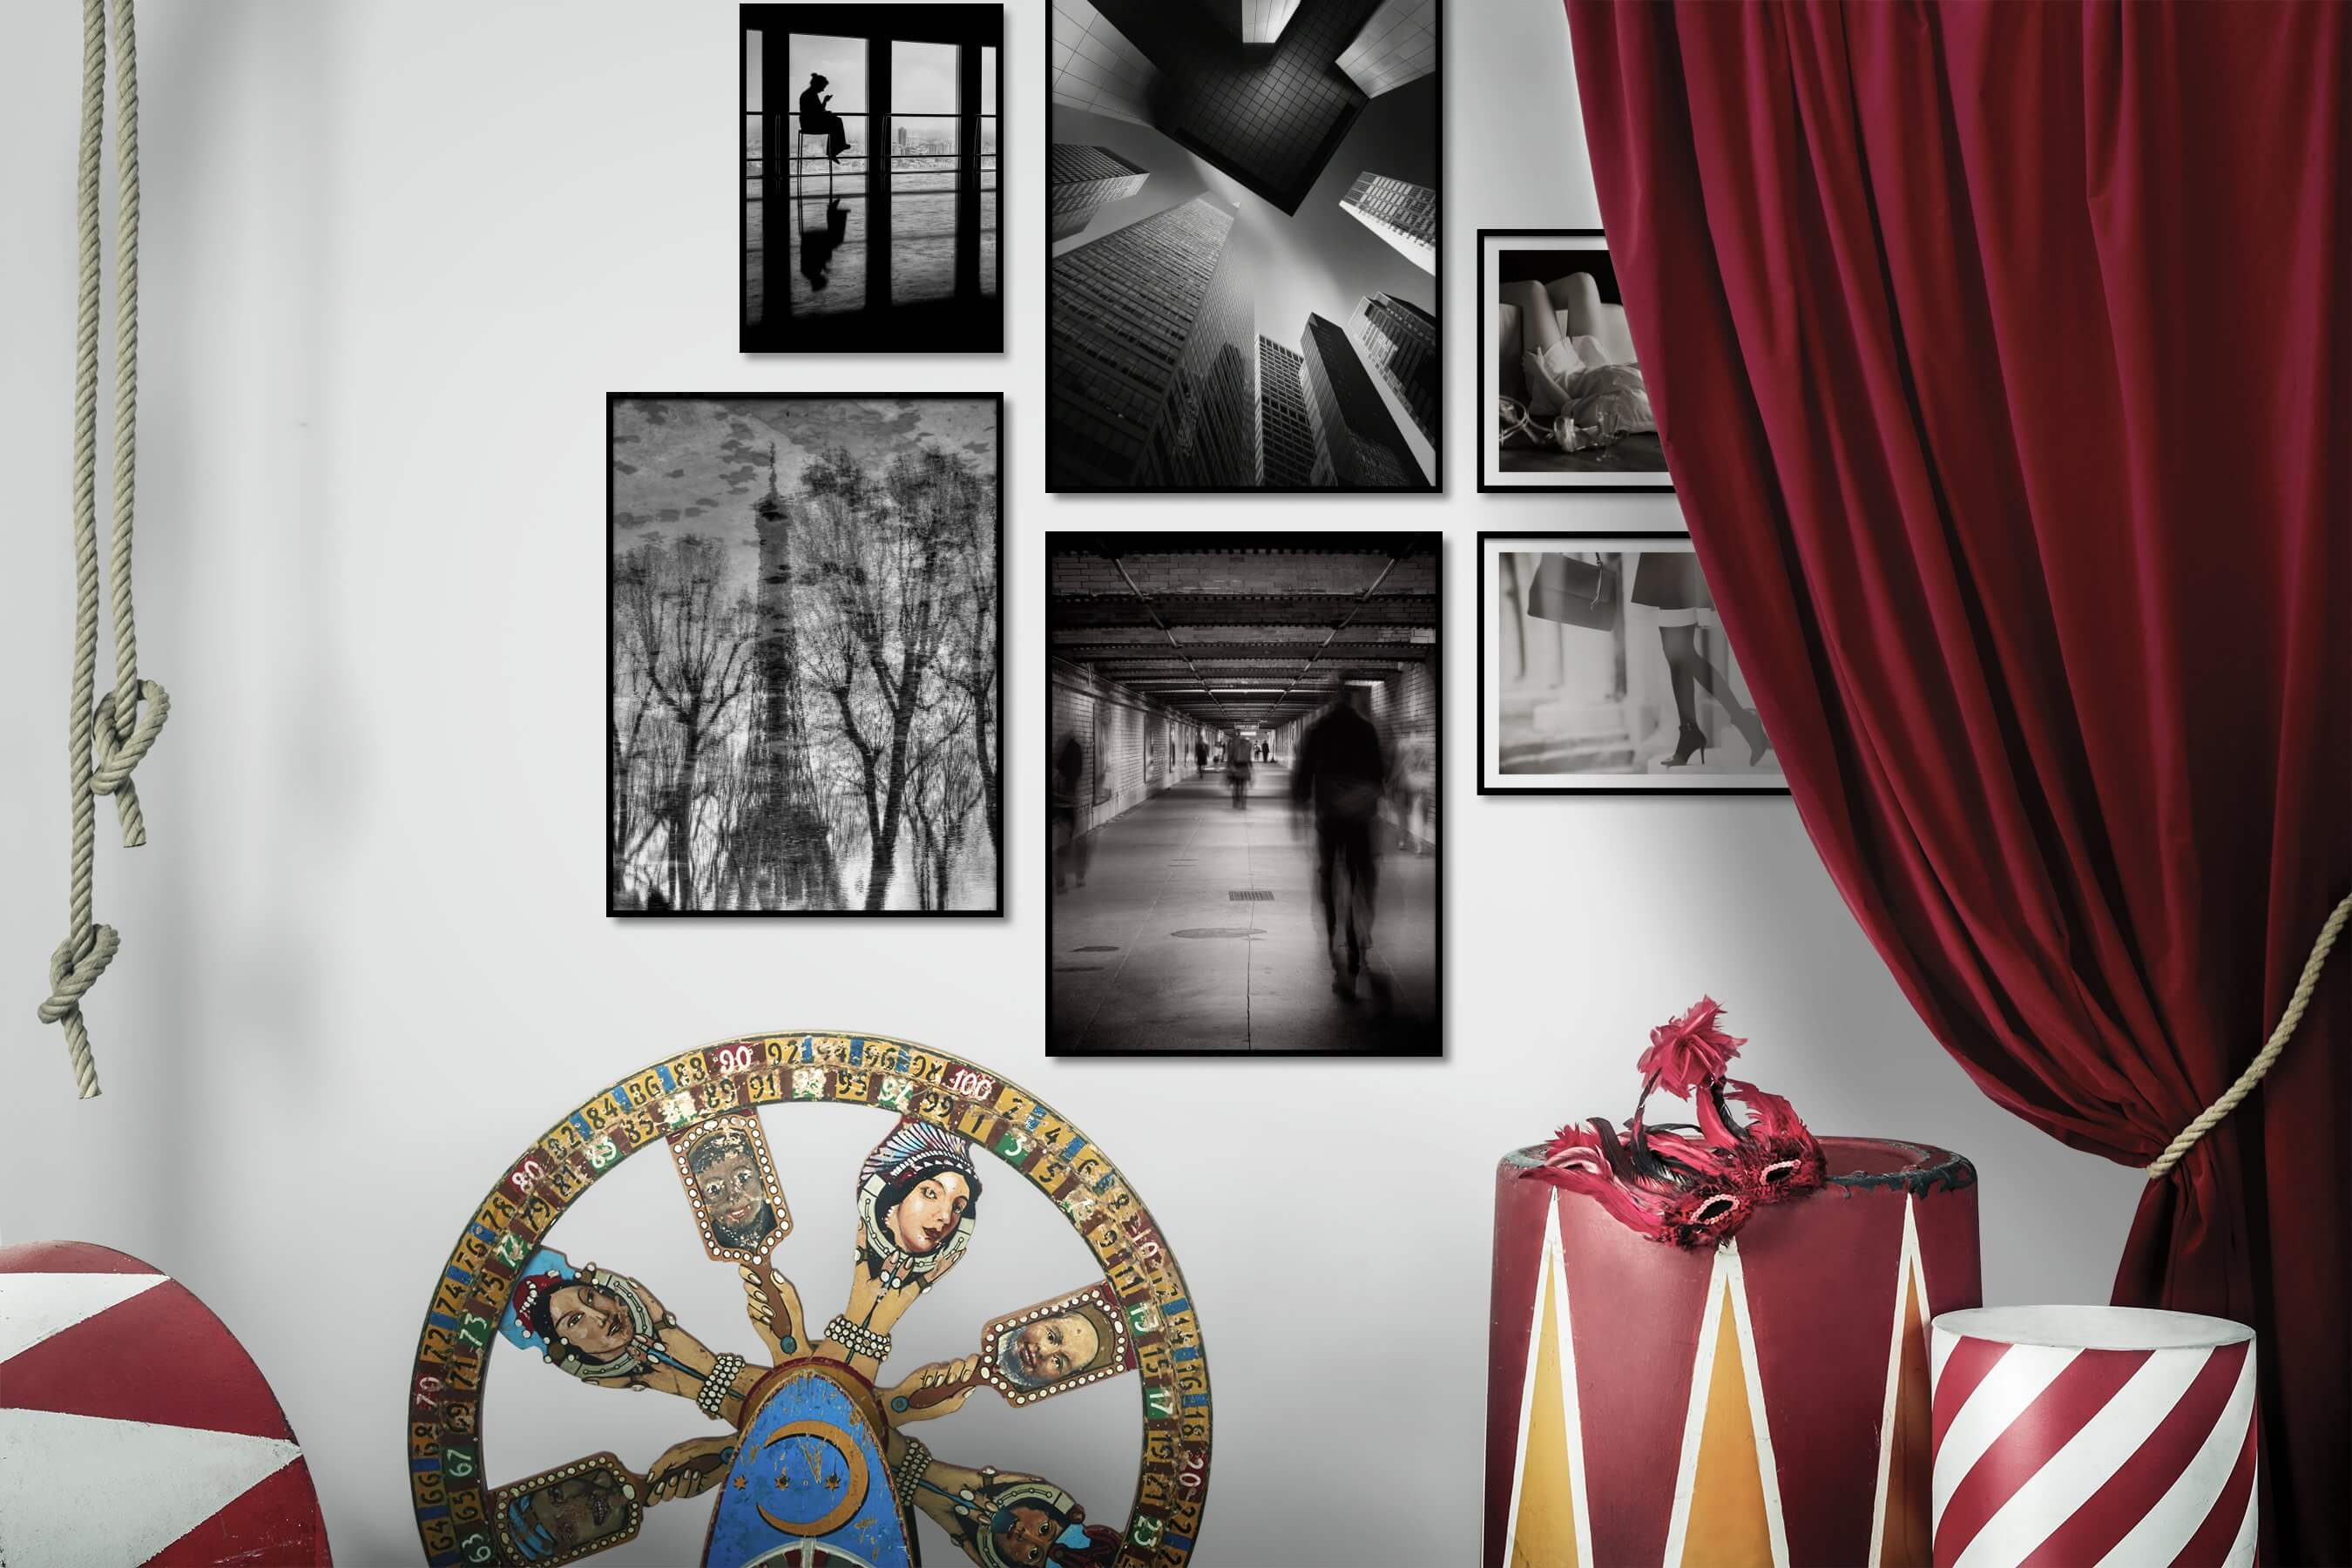 Gallery wall idea with six framed pictures arranged on a wall depicting Black & White, For the Moderate, City Life, Fashion & Beauty, and Vintage